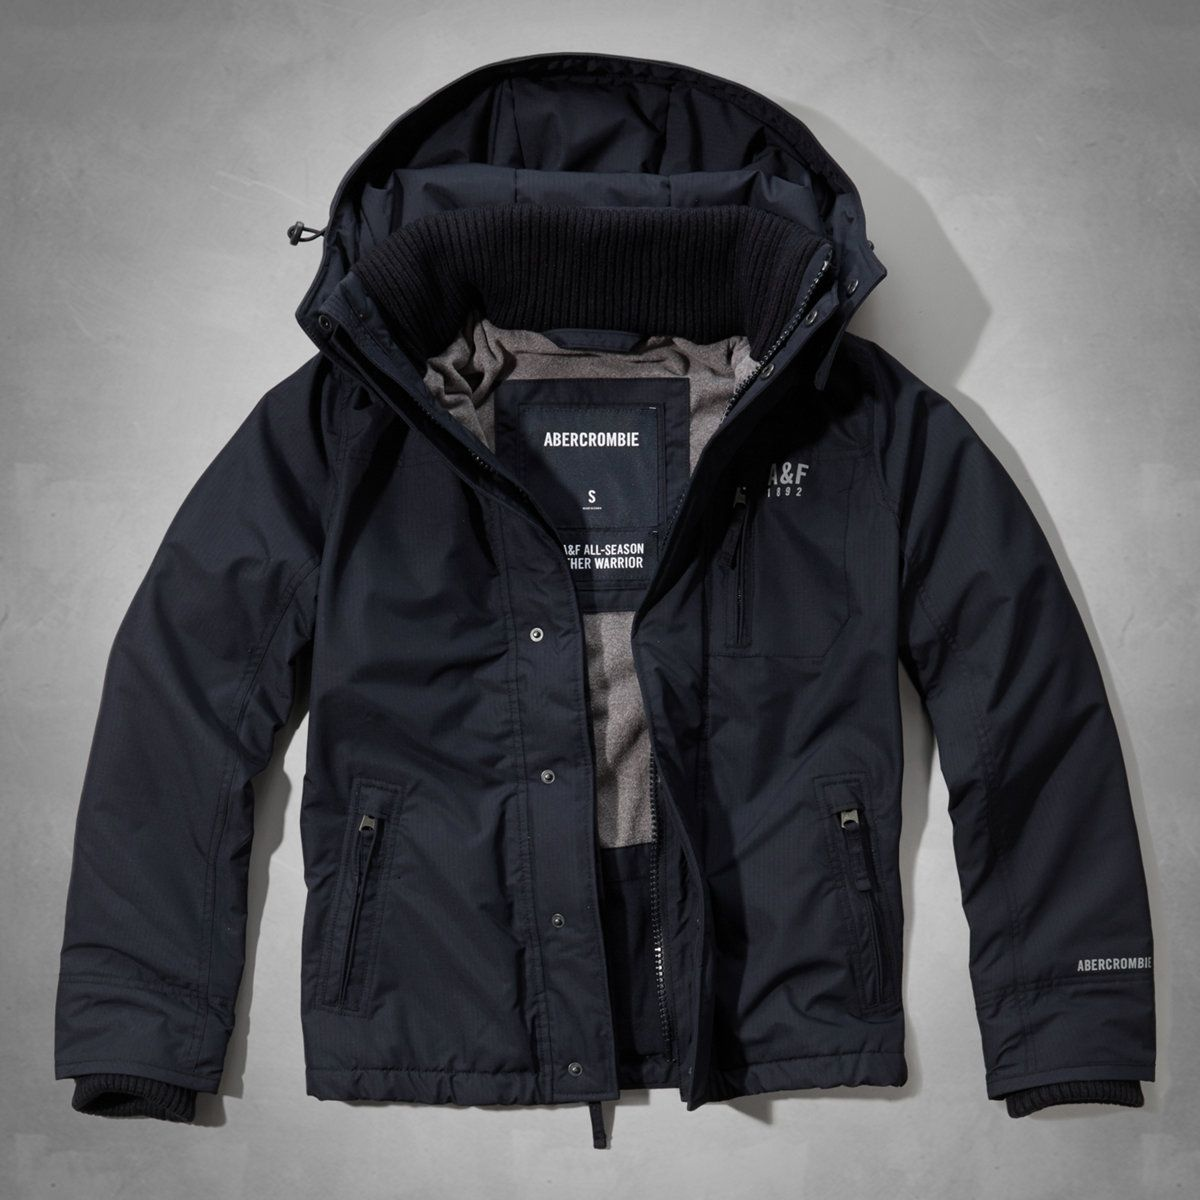 A F All Season Weather Warrior Jacket From Abercrombie Fitch Warriors Jacket Mens Outerwear Jacket Jackets [ 1200 x 1200 Pixel ]